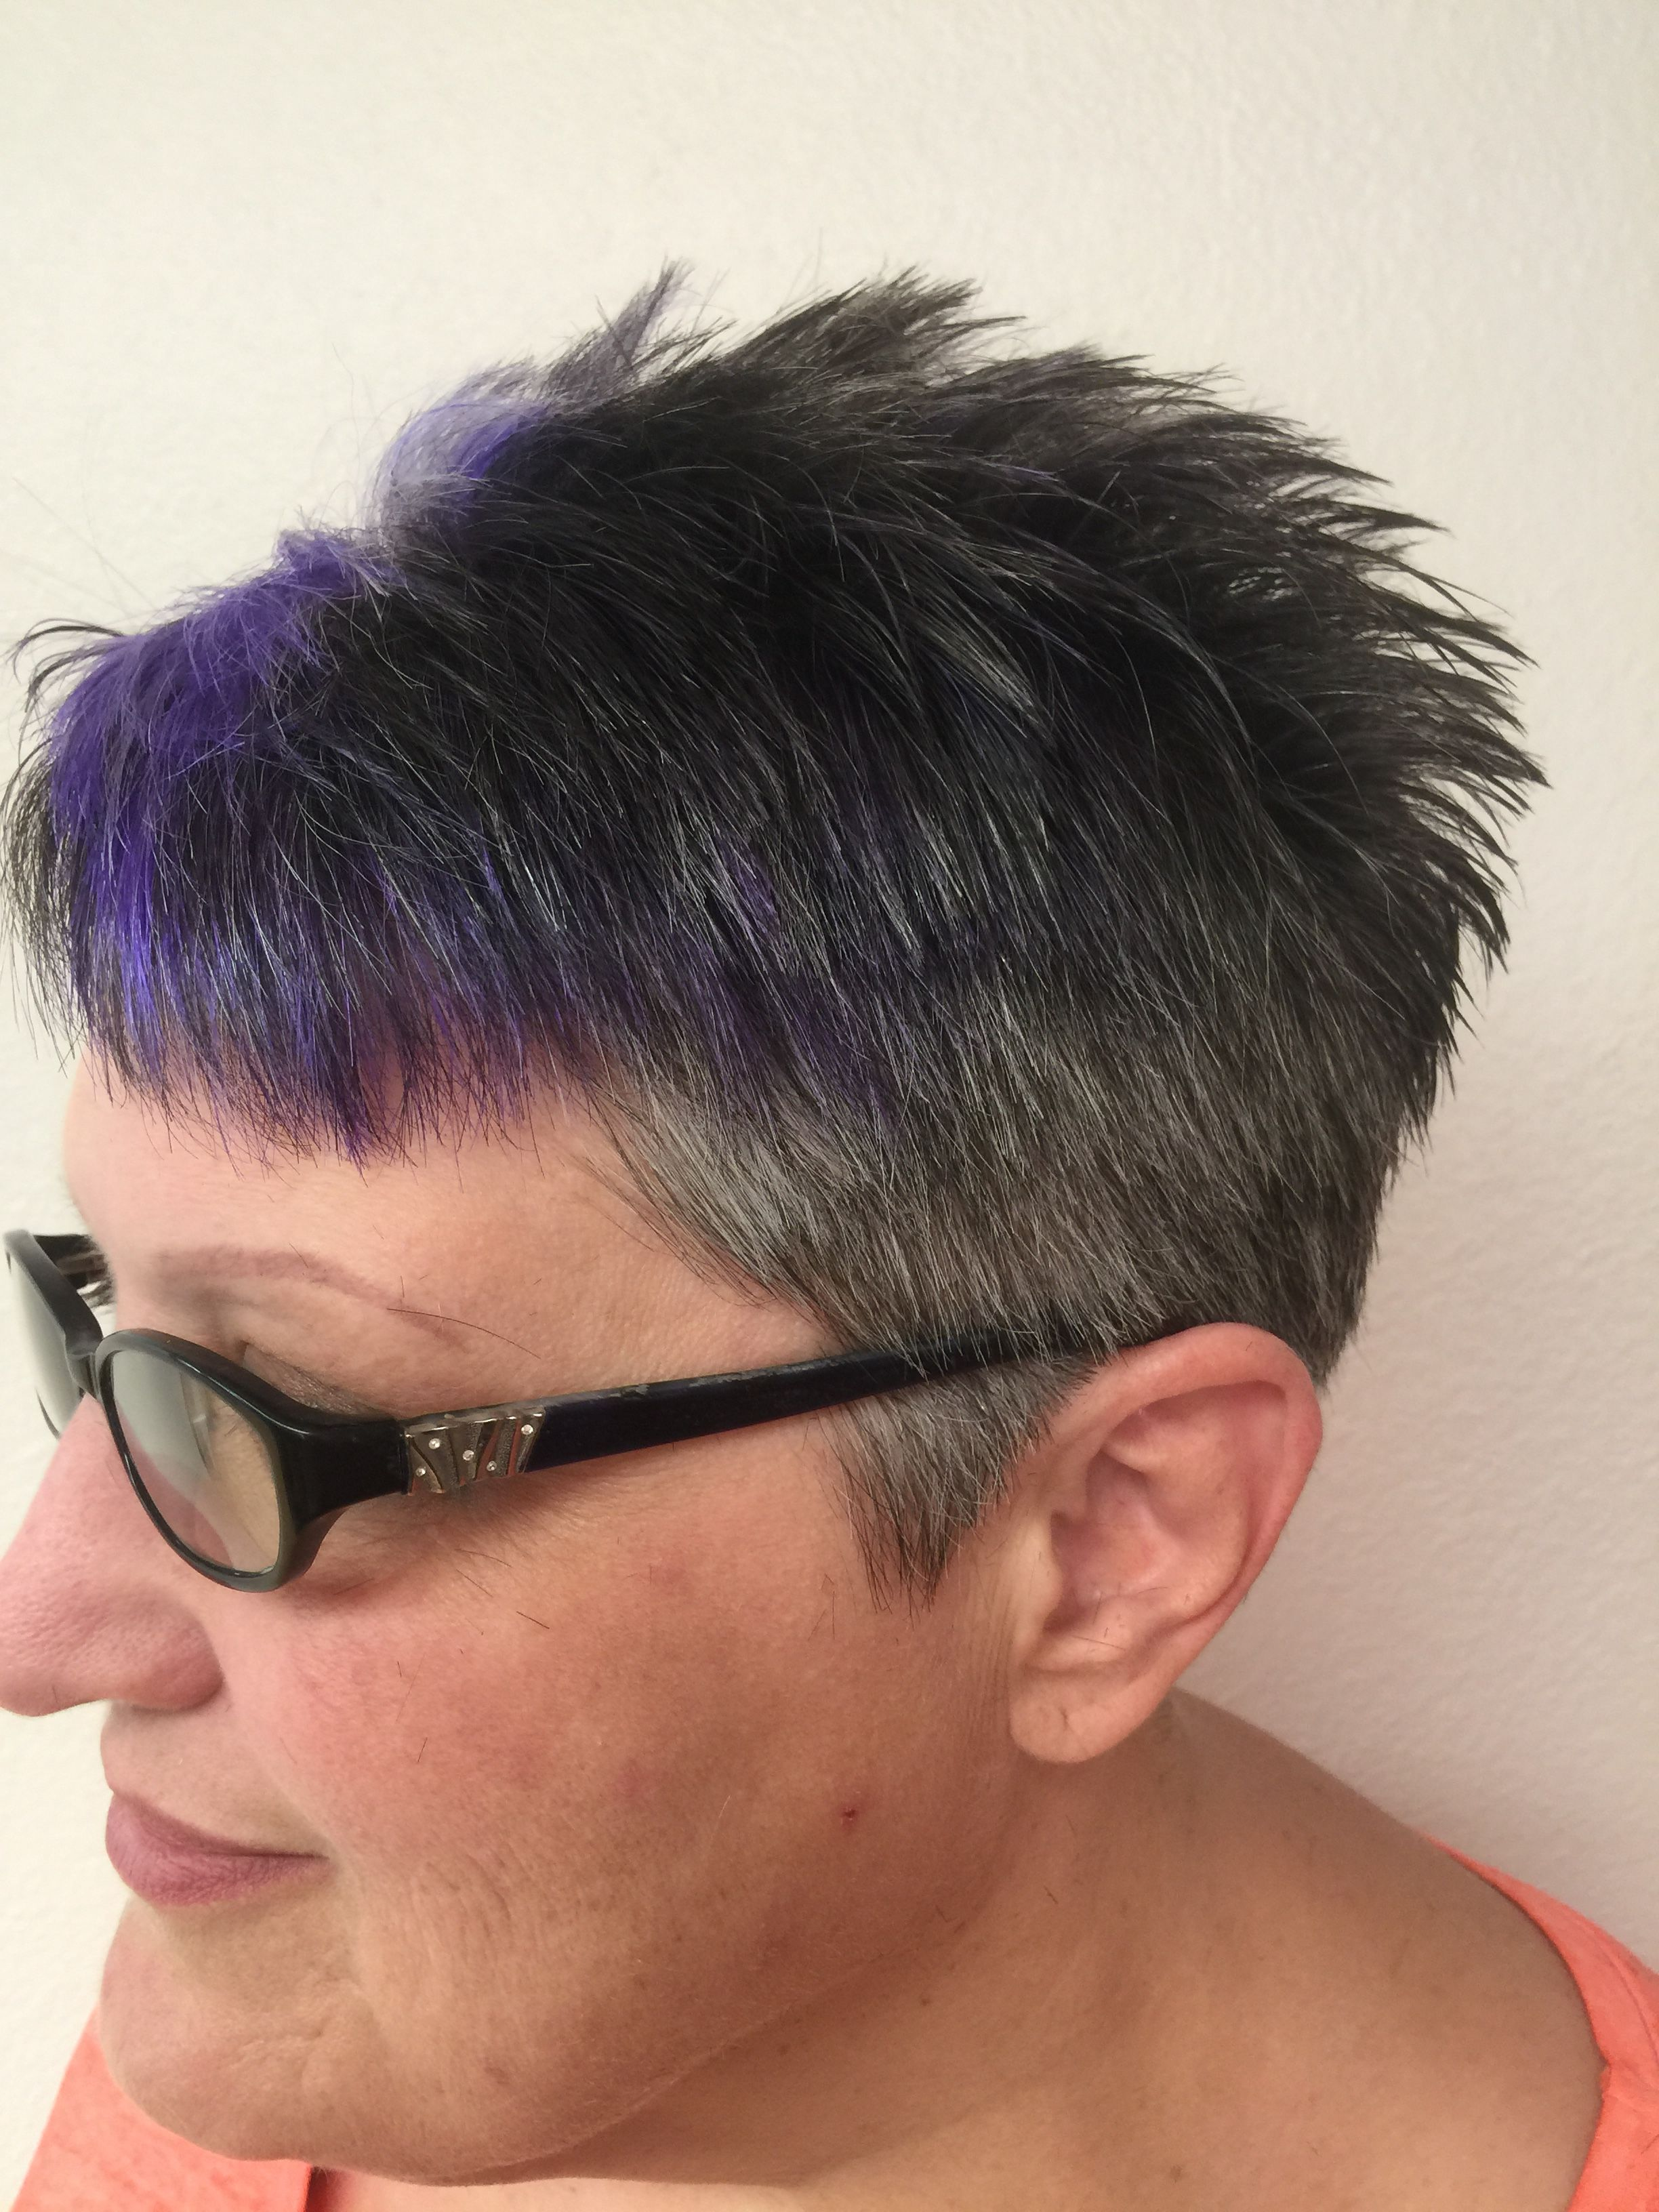 Pin by Kim Forbus on Hair by Kim (With images) Hair, Kim